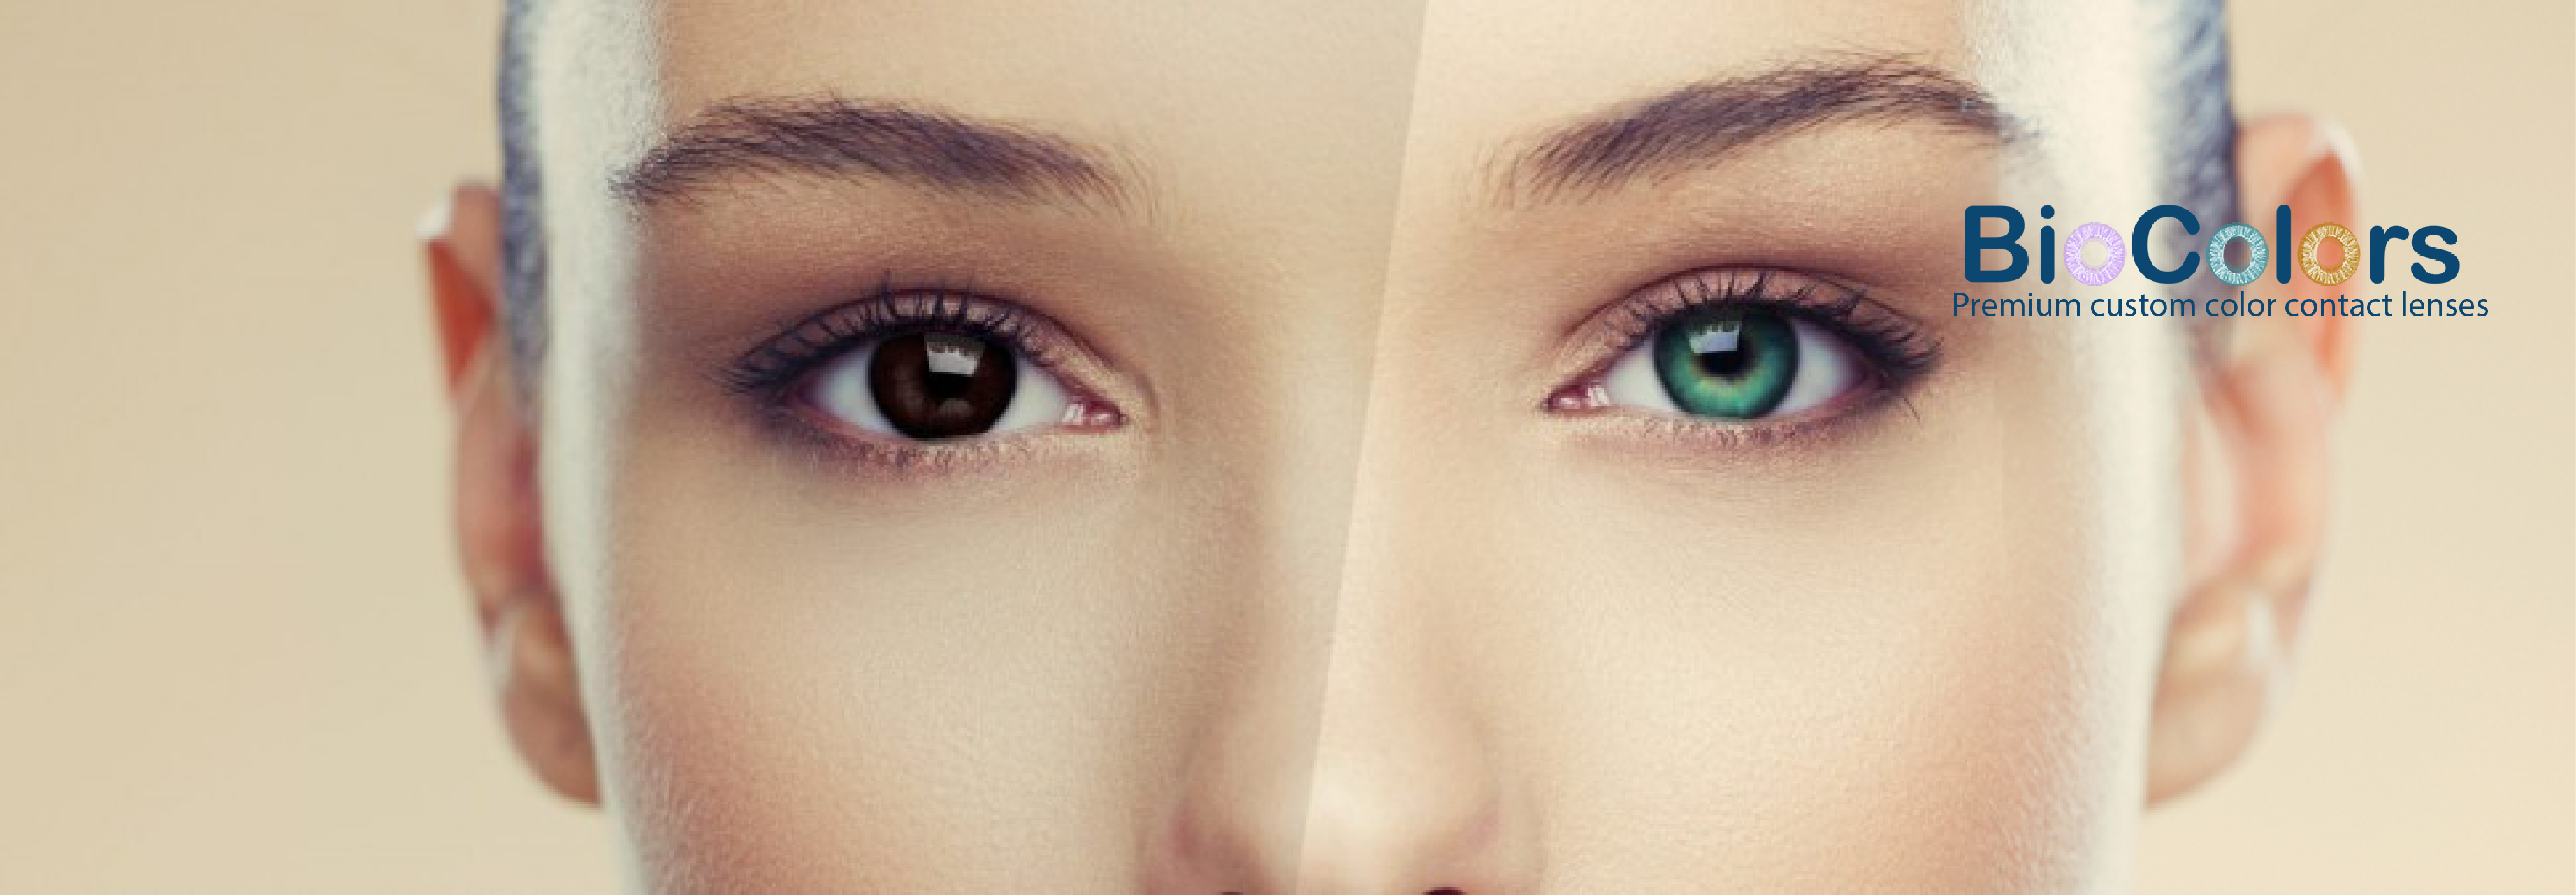 Orion vision group custom contact lenses 100s of color combinations nvjuhfo Image collections